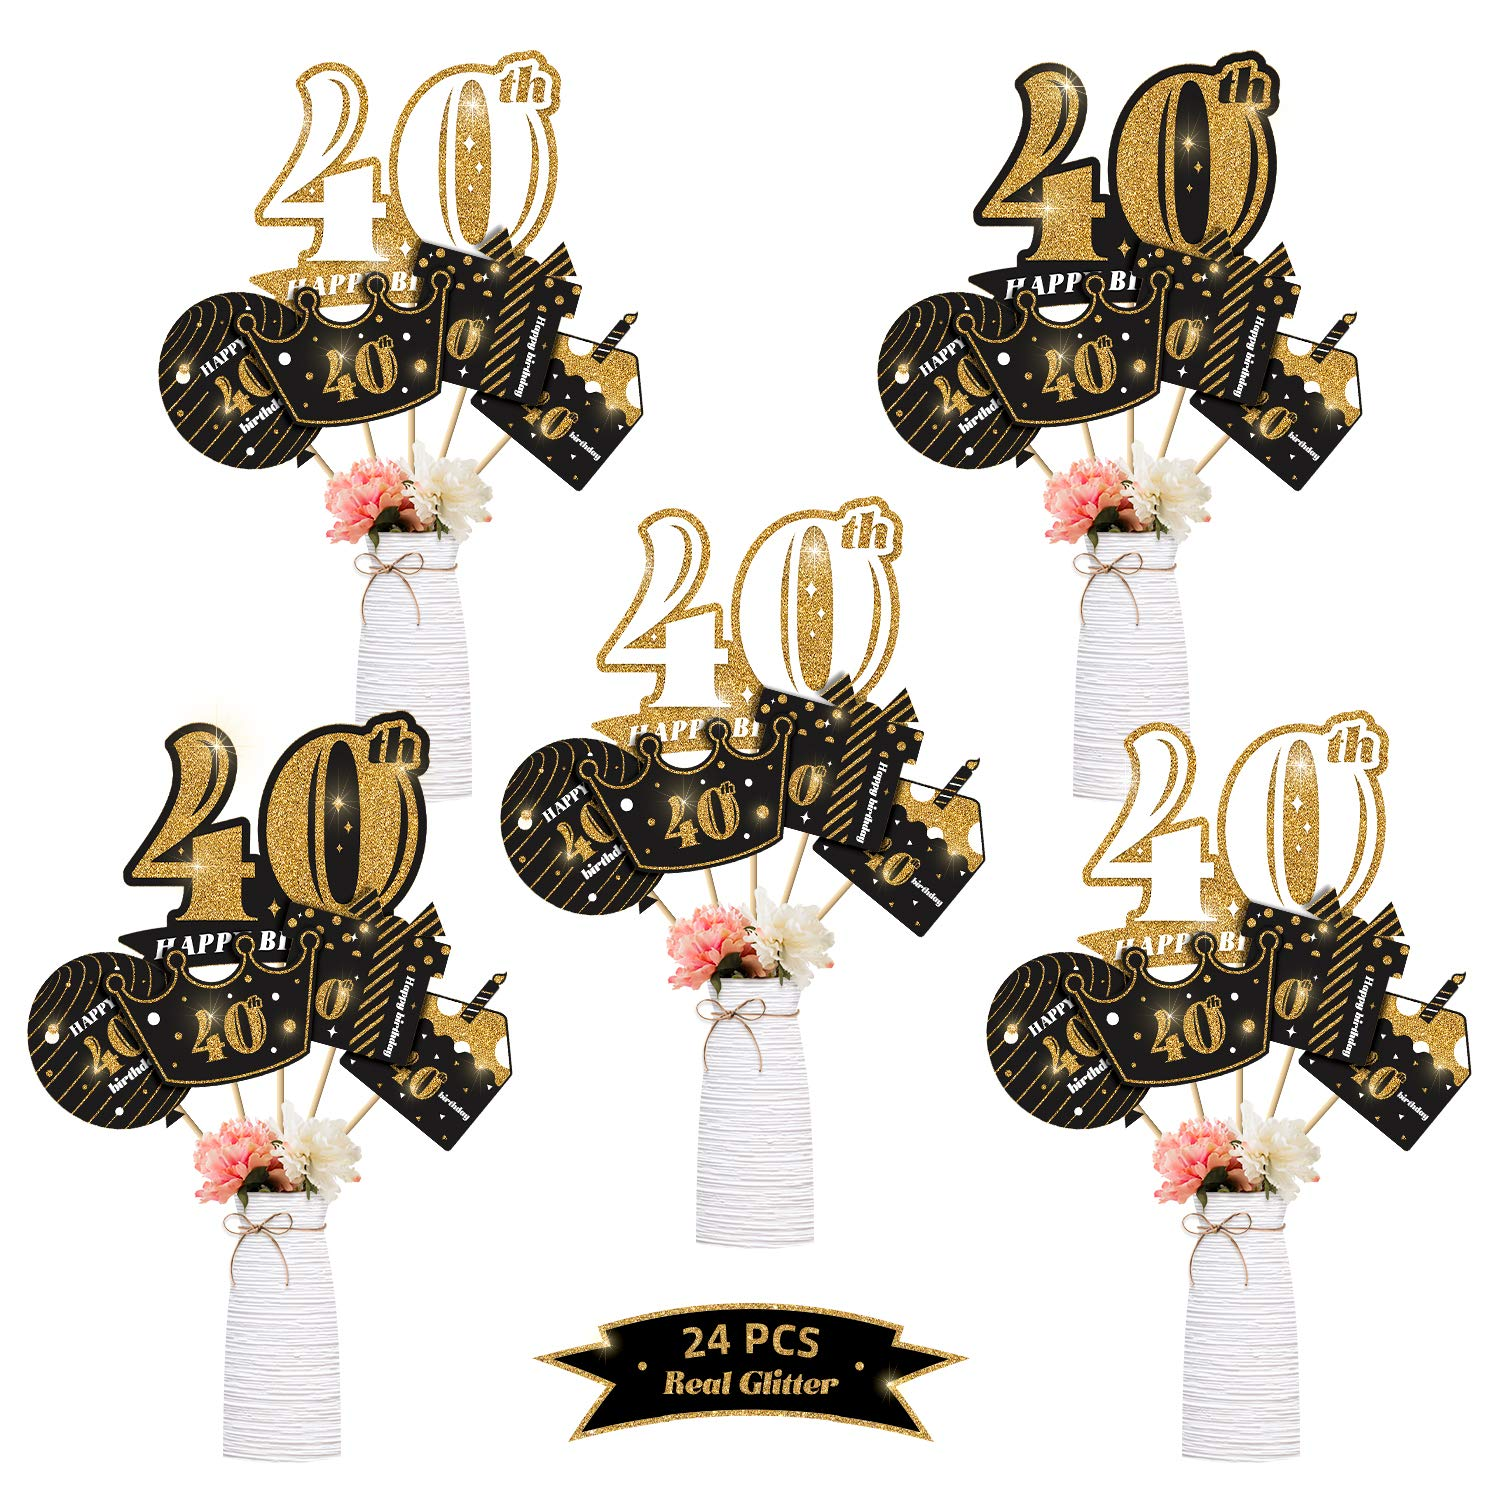 kortes 24Pack 40th Birthday Party Centerpiece Stickers (Real Glitter) Birthday Table Toppers Party Photo Booth Props, 40th Birthday Party Decoration Set